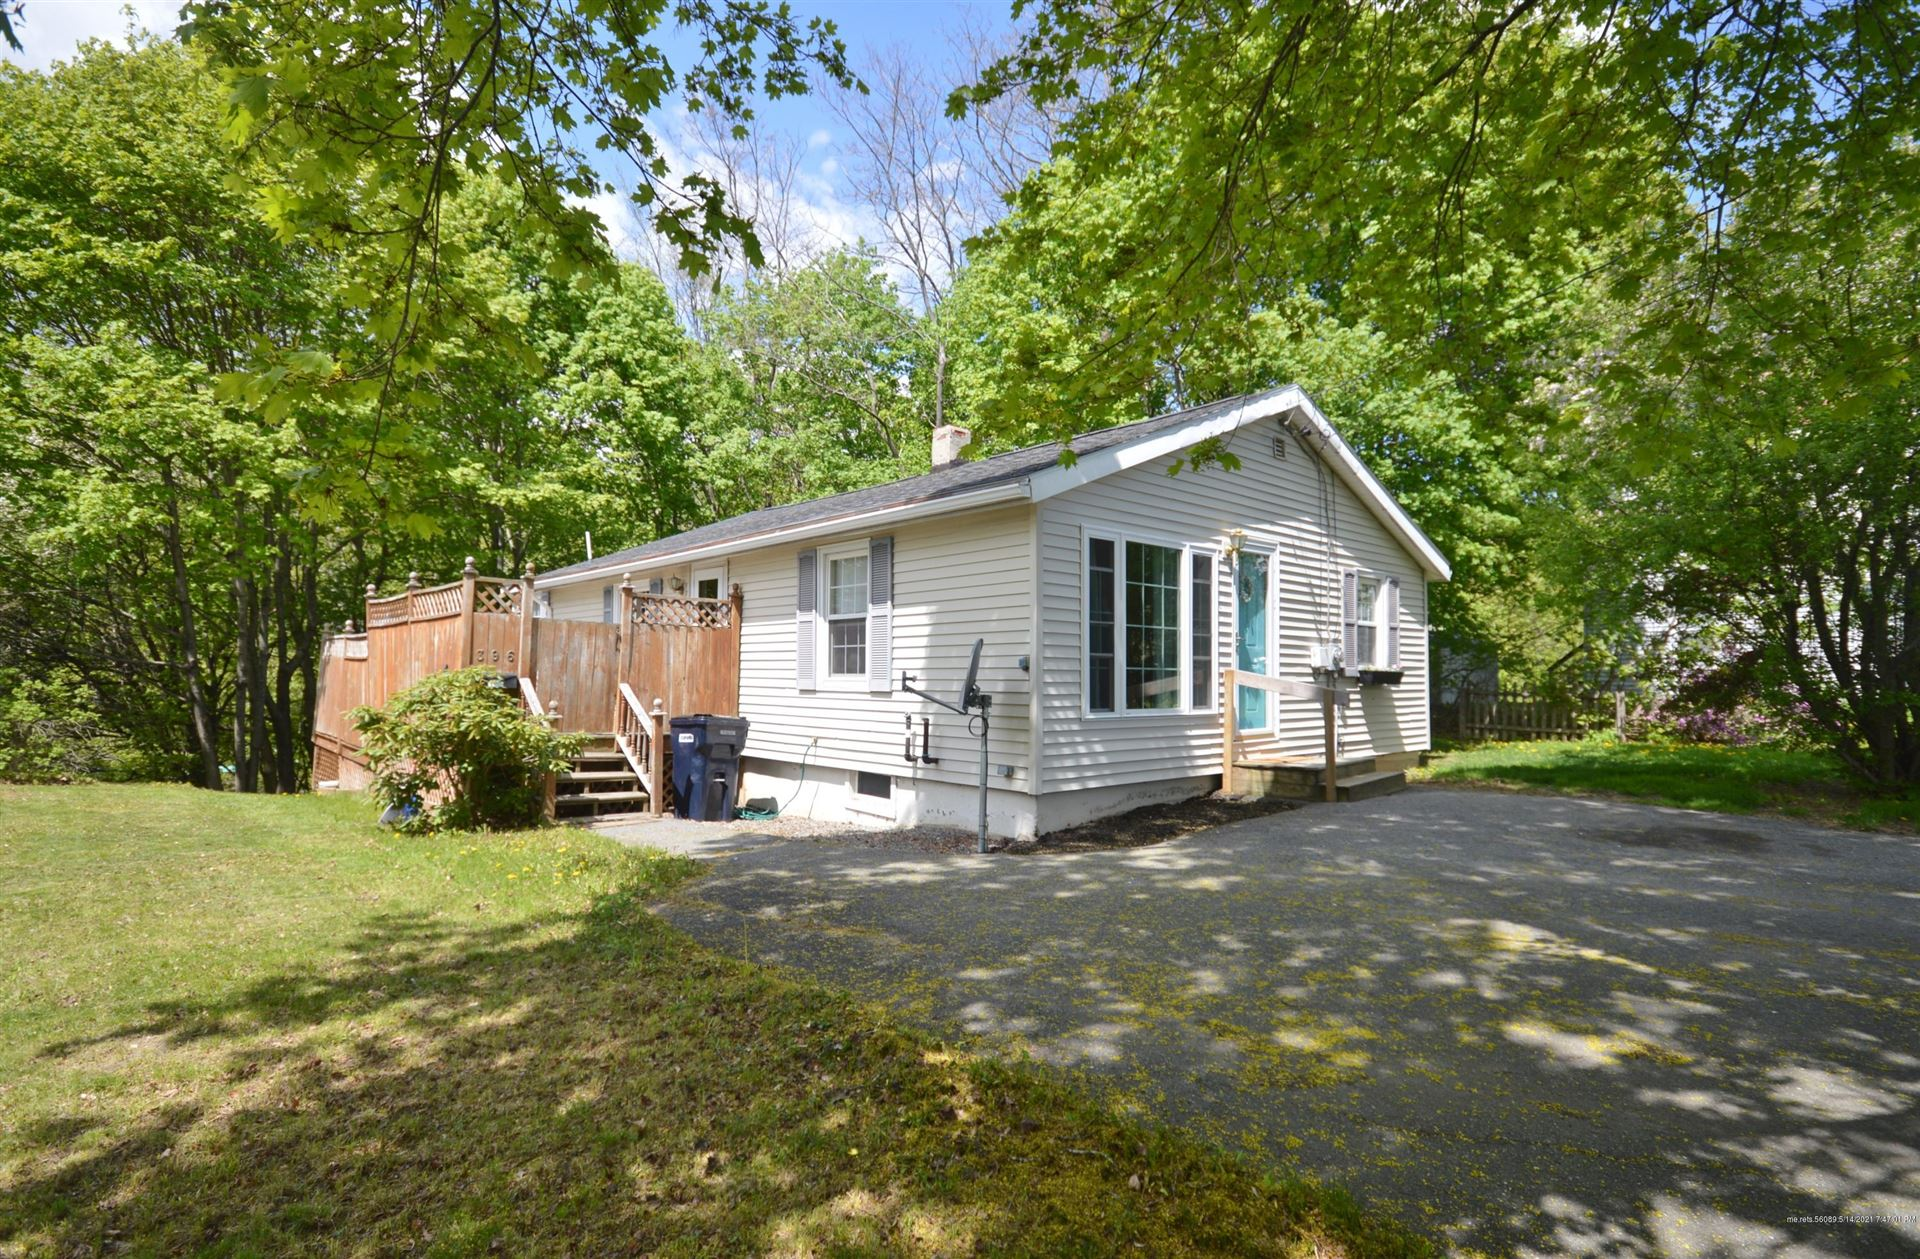 Photo of 396 Forest Avenue, Bangor, ME 04401 (MLS # 1491788)